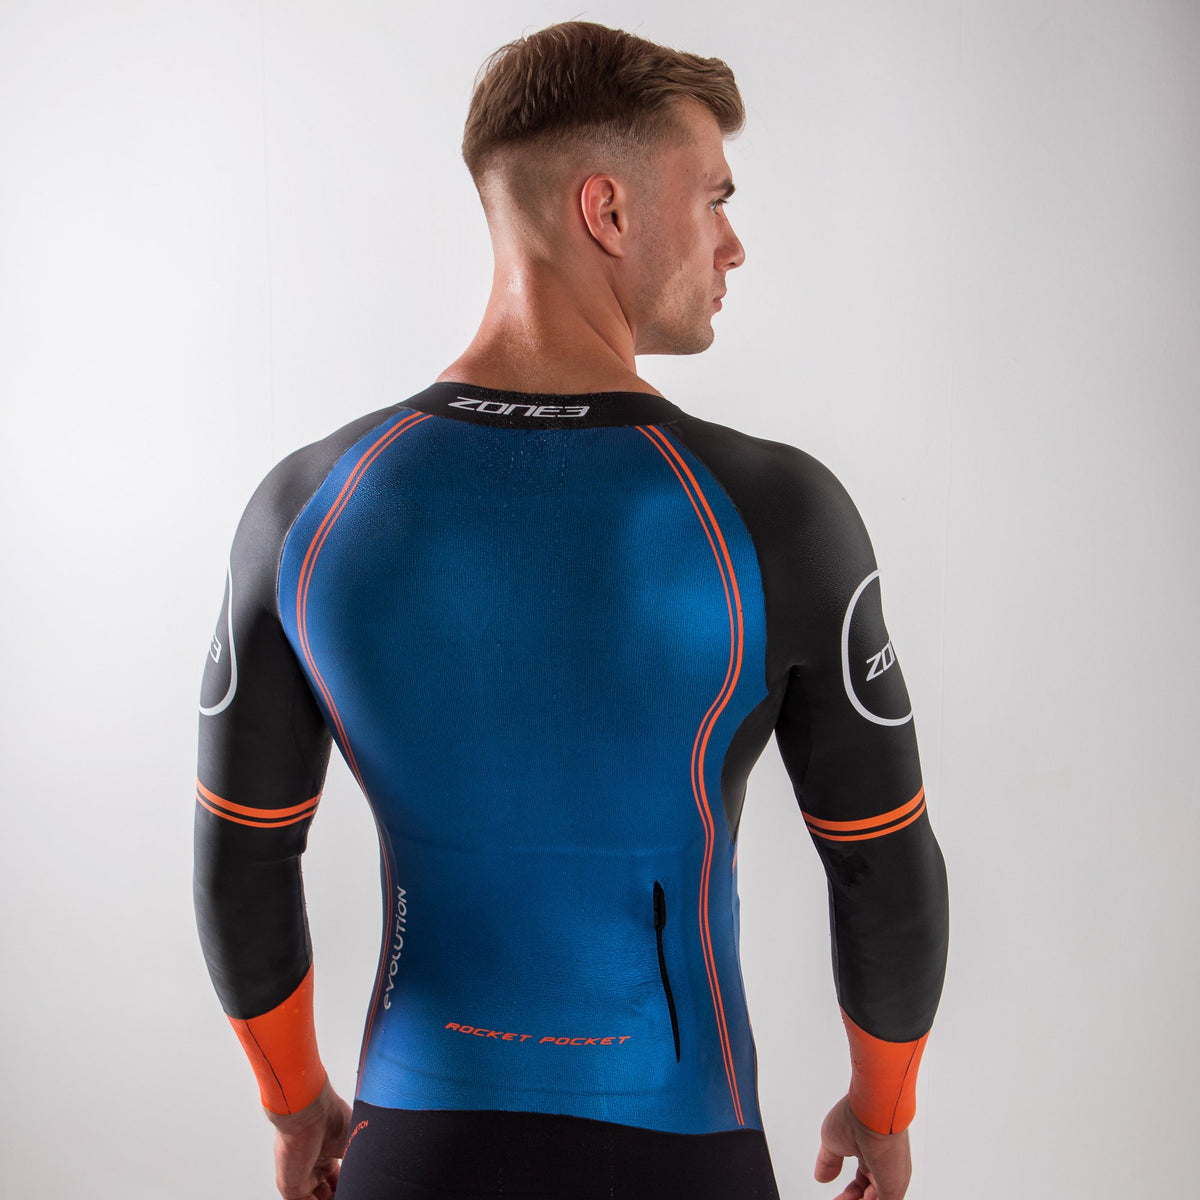 Men's Swim-Run Evolution Wetsuit with 8mm Calf Sleeves back pose